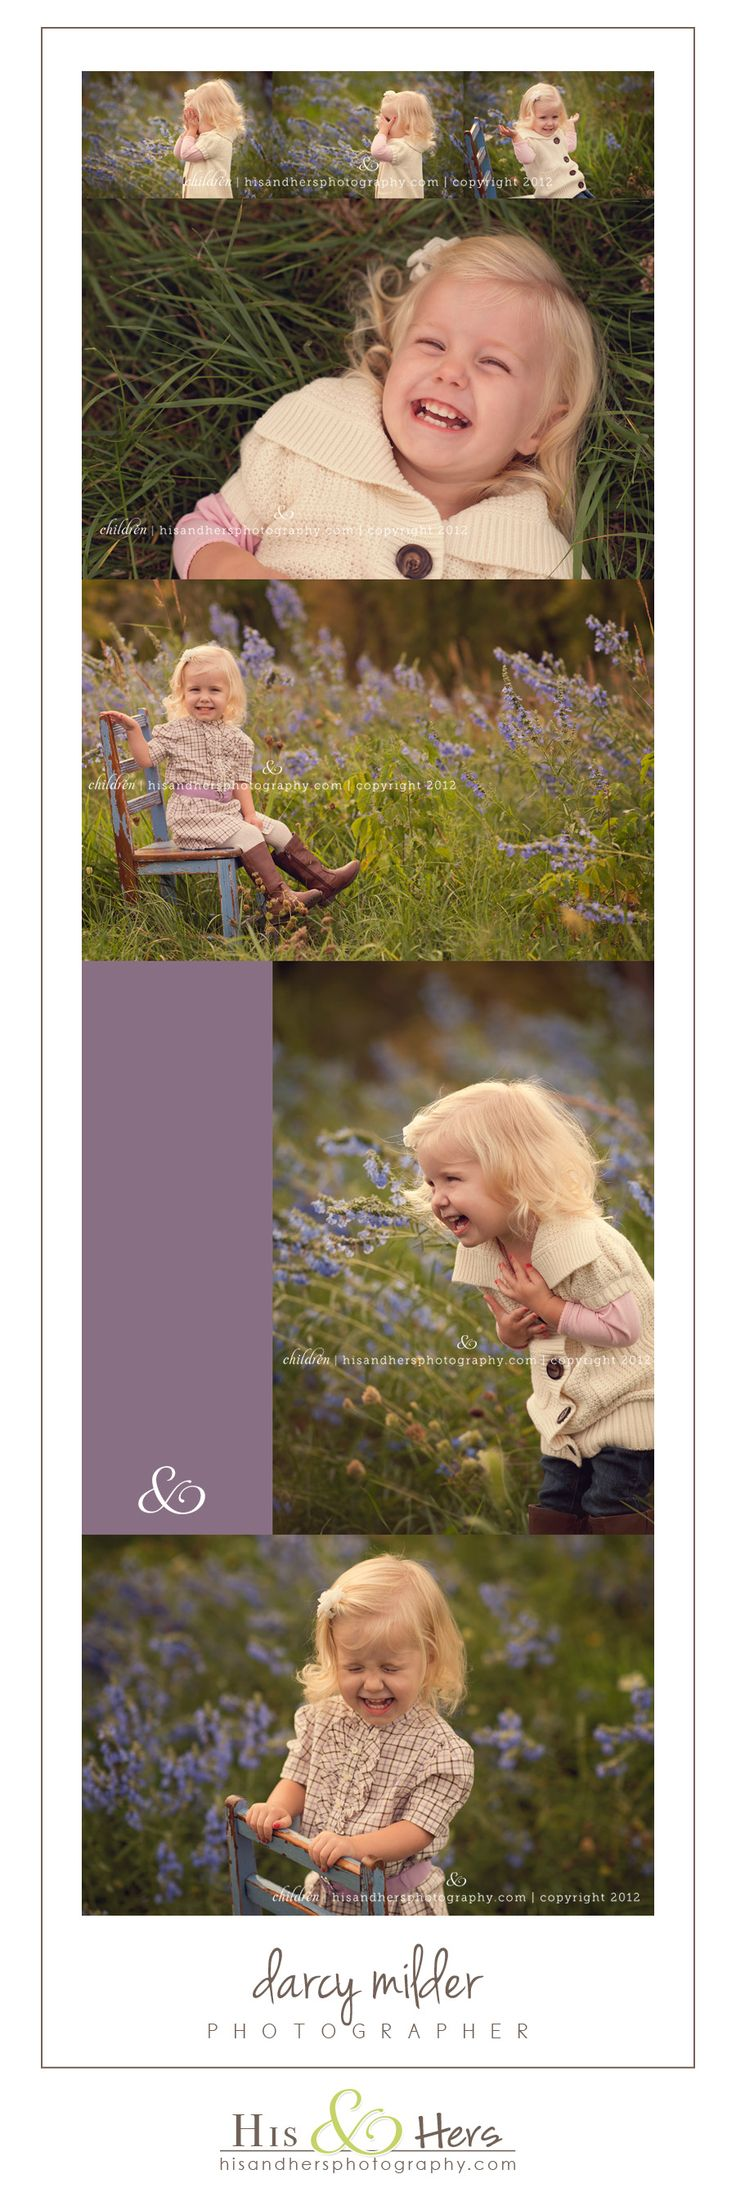 2-year-old portraits | Child Photographer, Darcy Milder | His & Hers